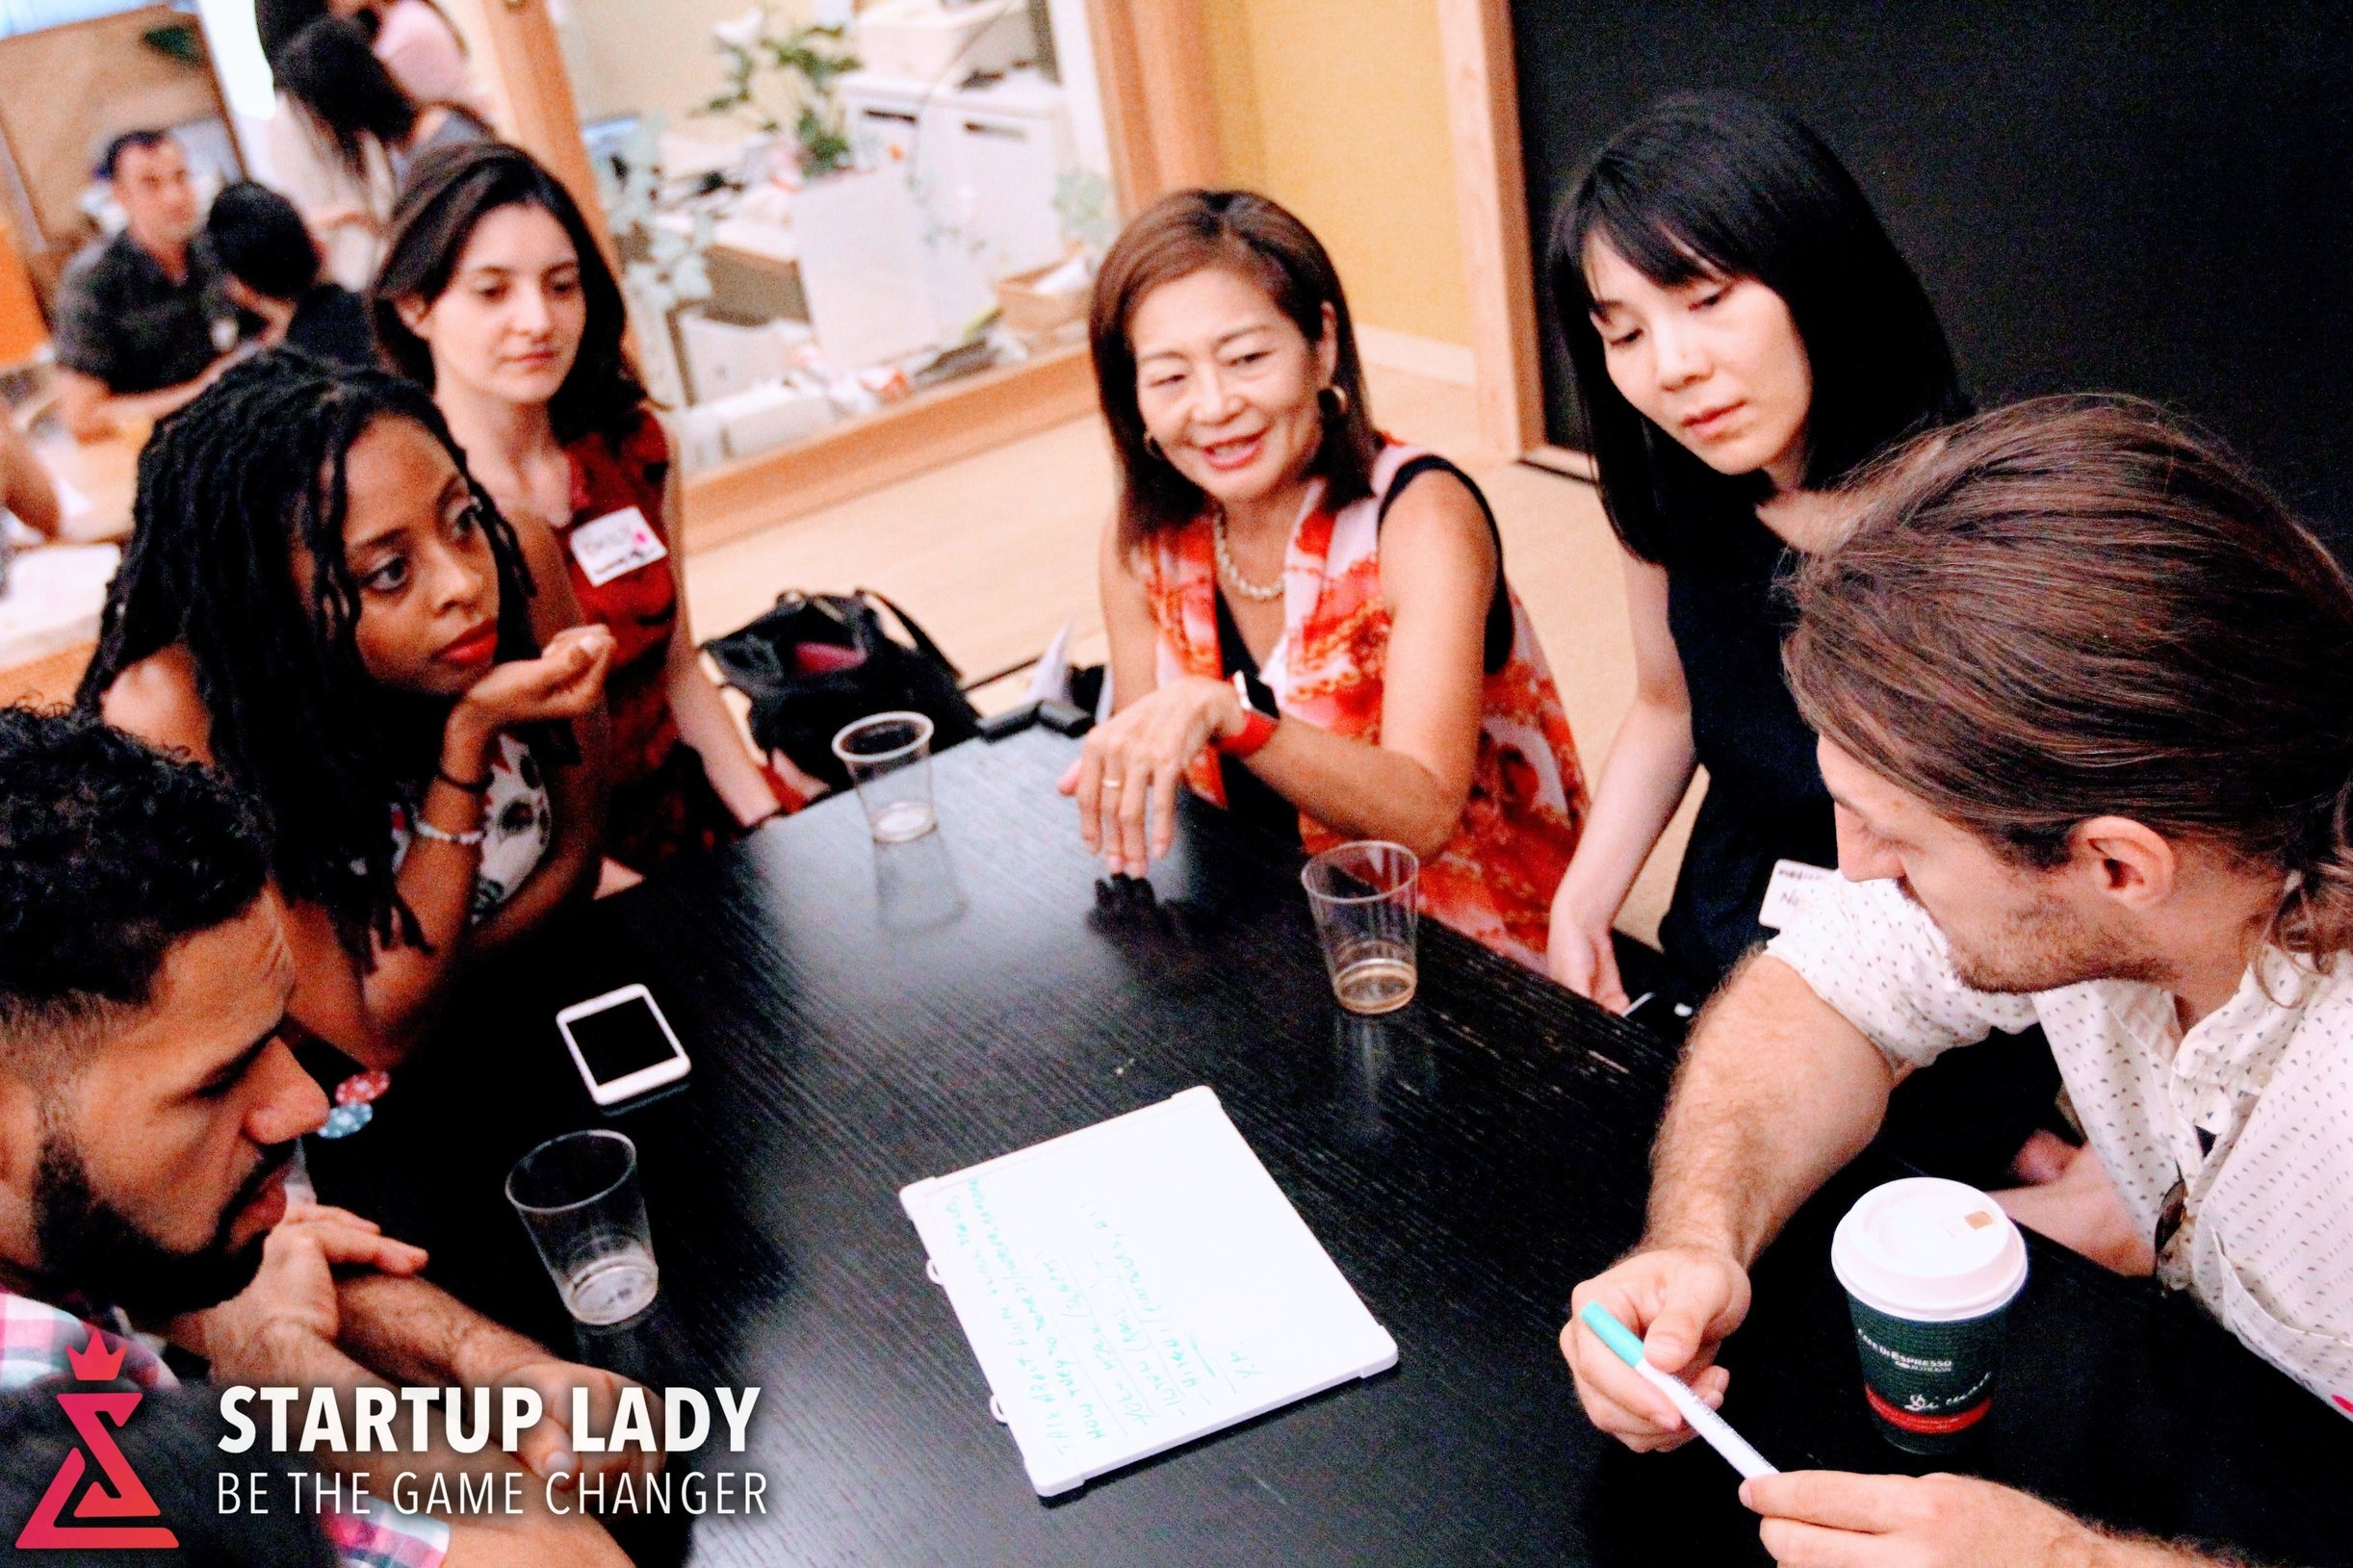 - Looking for somewhere to share your newly created personas and get feedback?At our bi-monthly Startup Lady Mastermind Session, you can present and brainstorm your different audience, competitor, and brand personas to a group who can give you feedback and suggestions to improve your plans further!